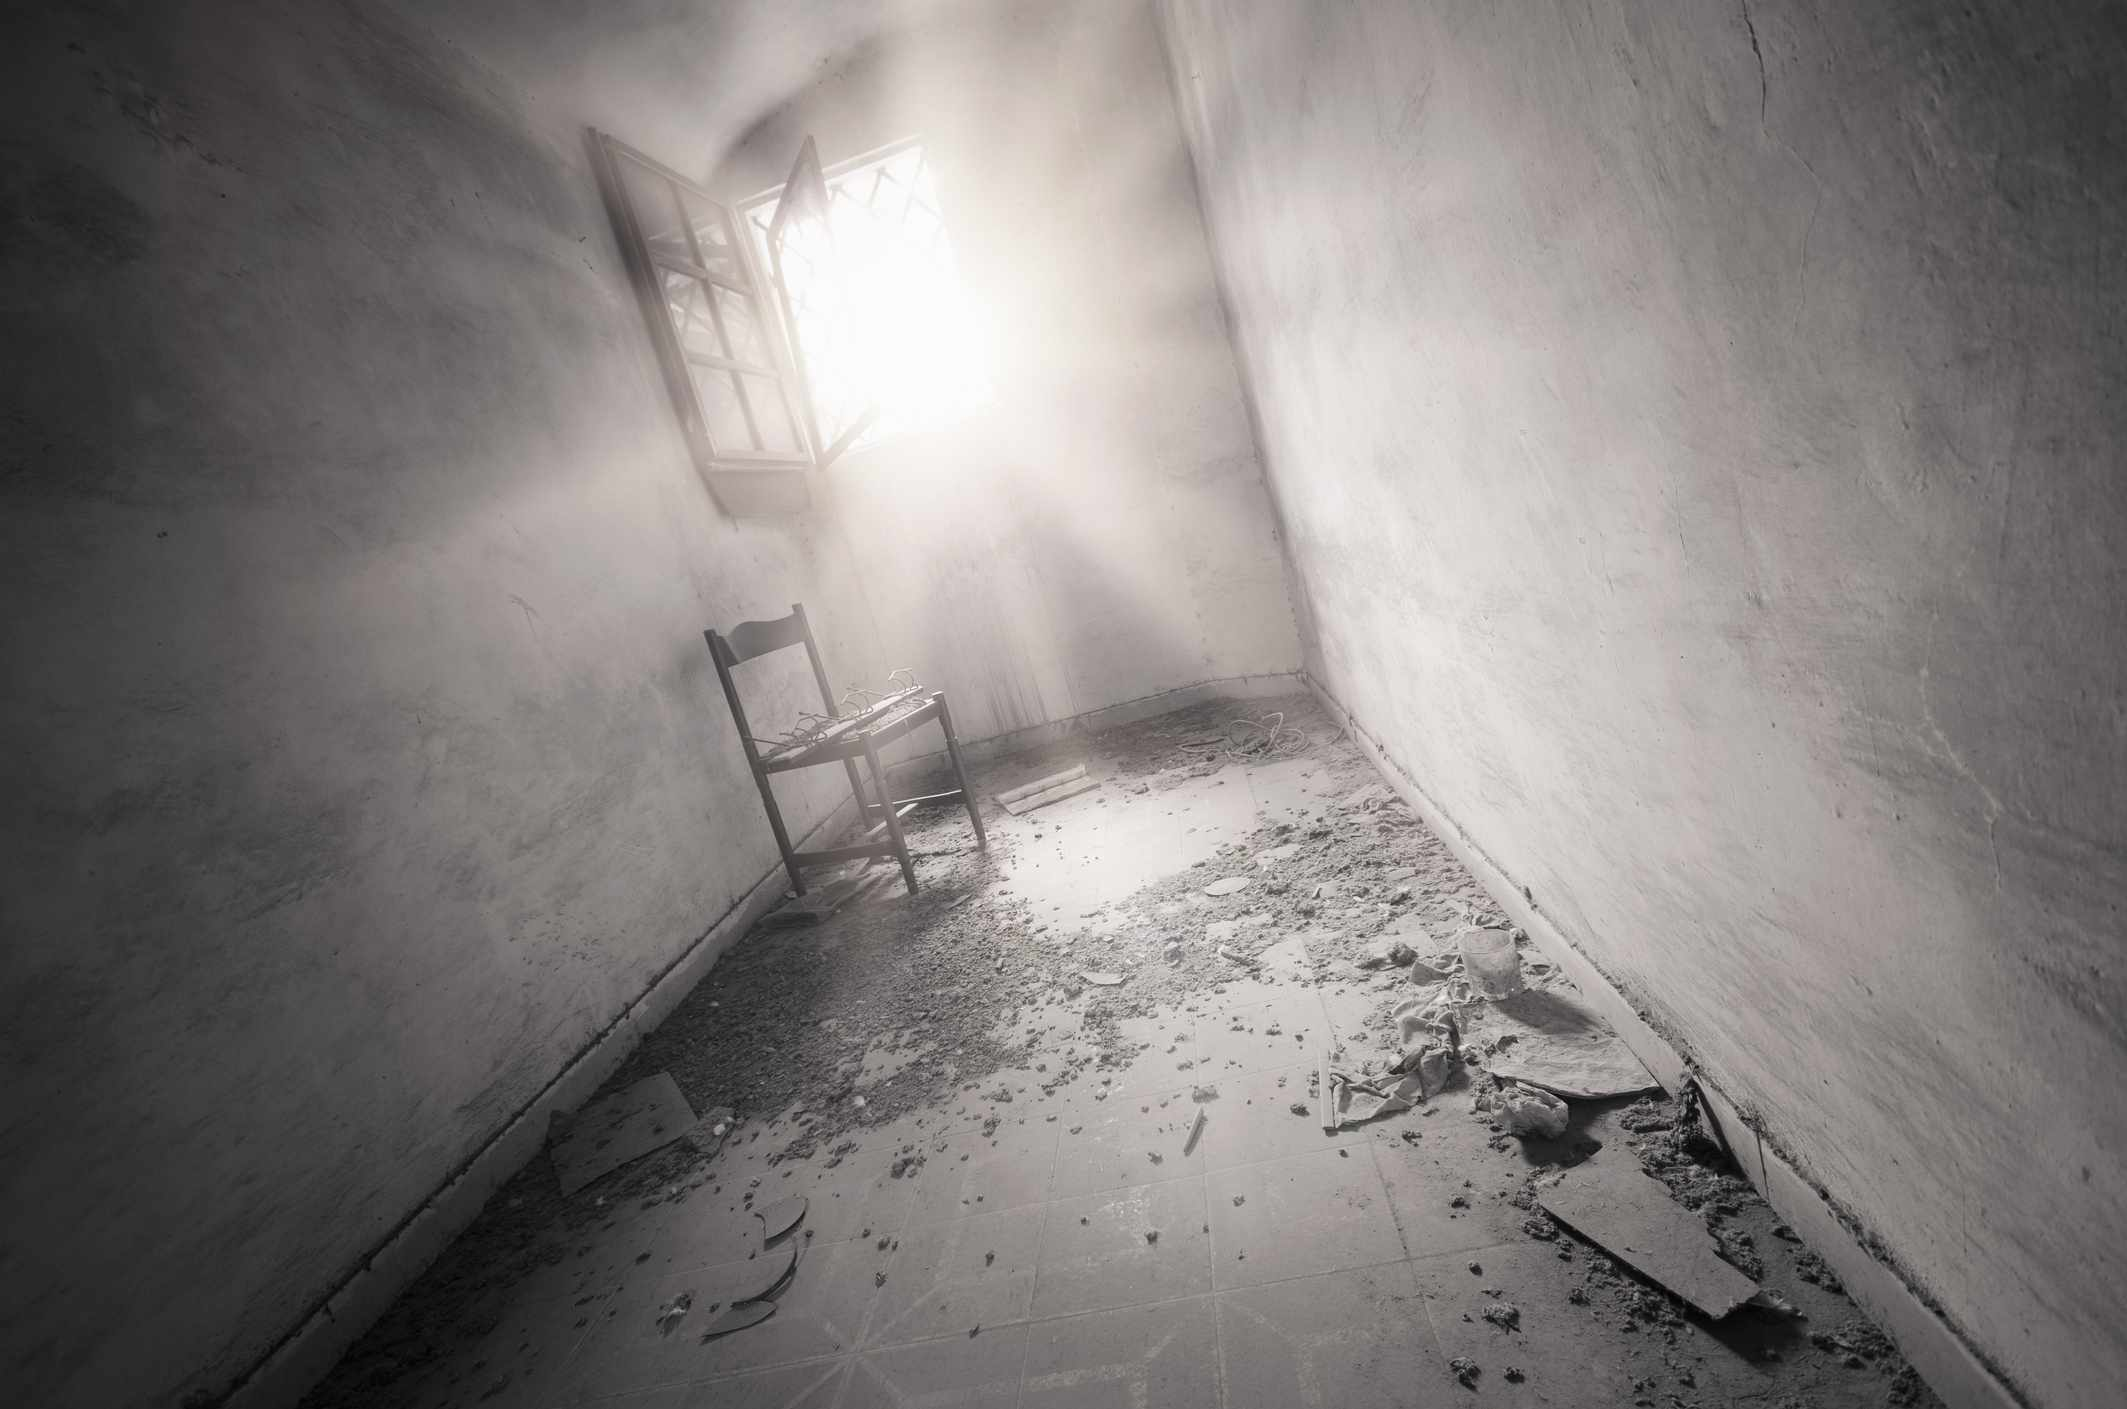 Old ruined abandonated prison cells interior